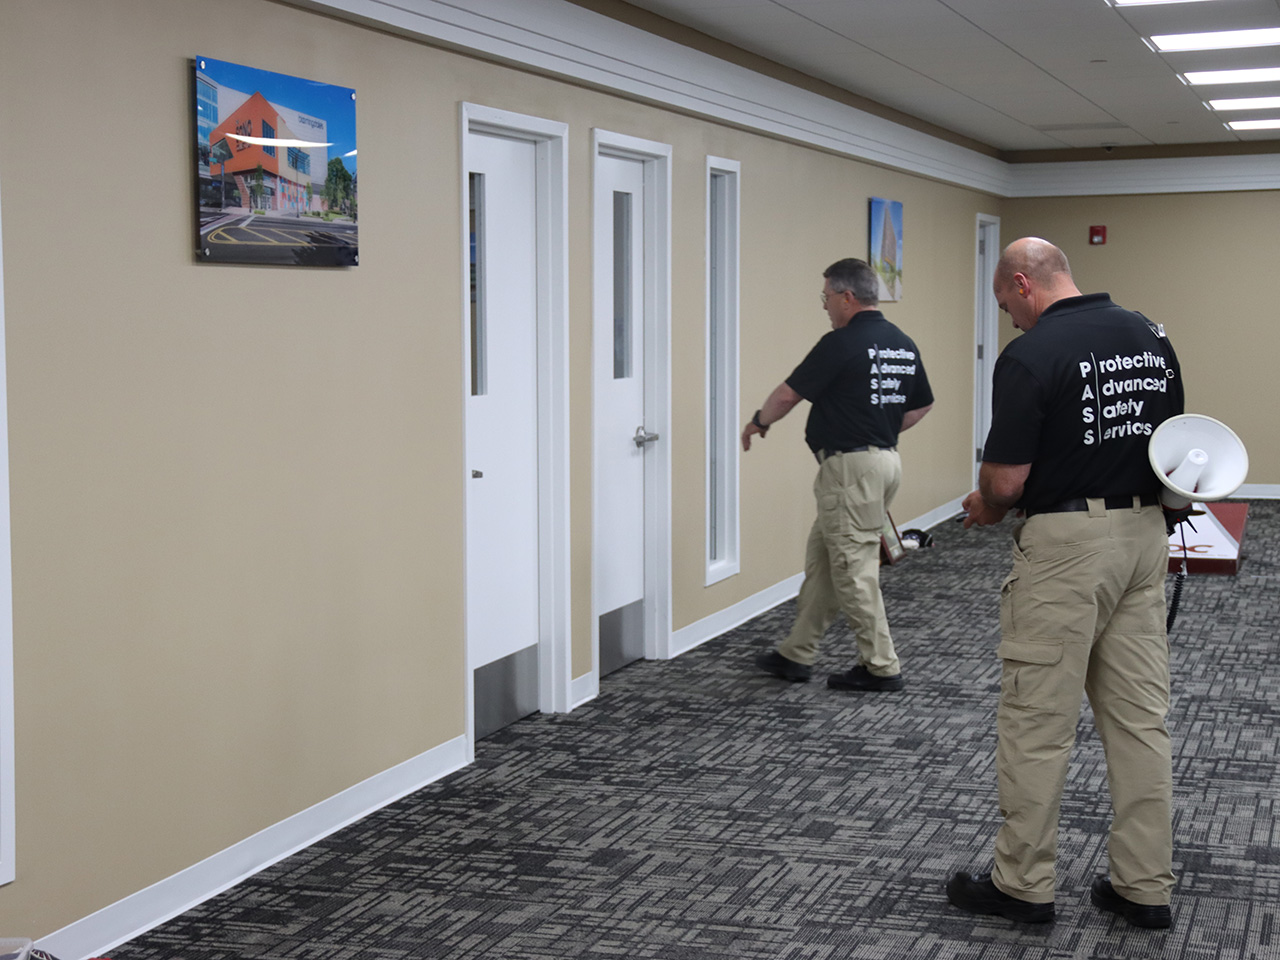 active shooter training, shooter tests doors